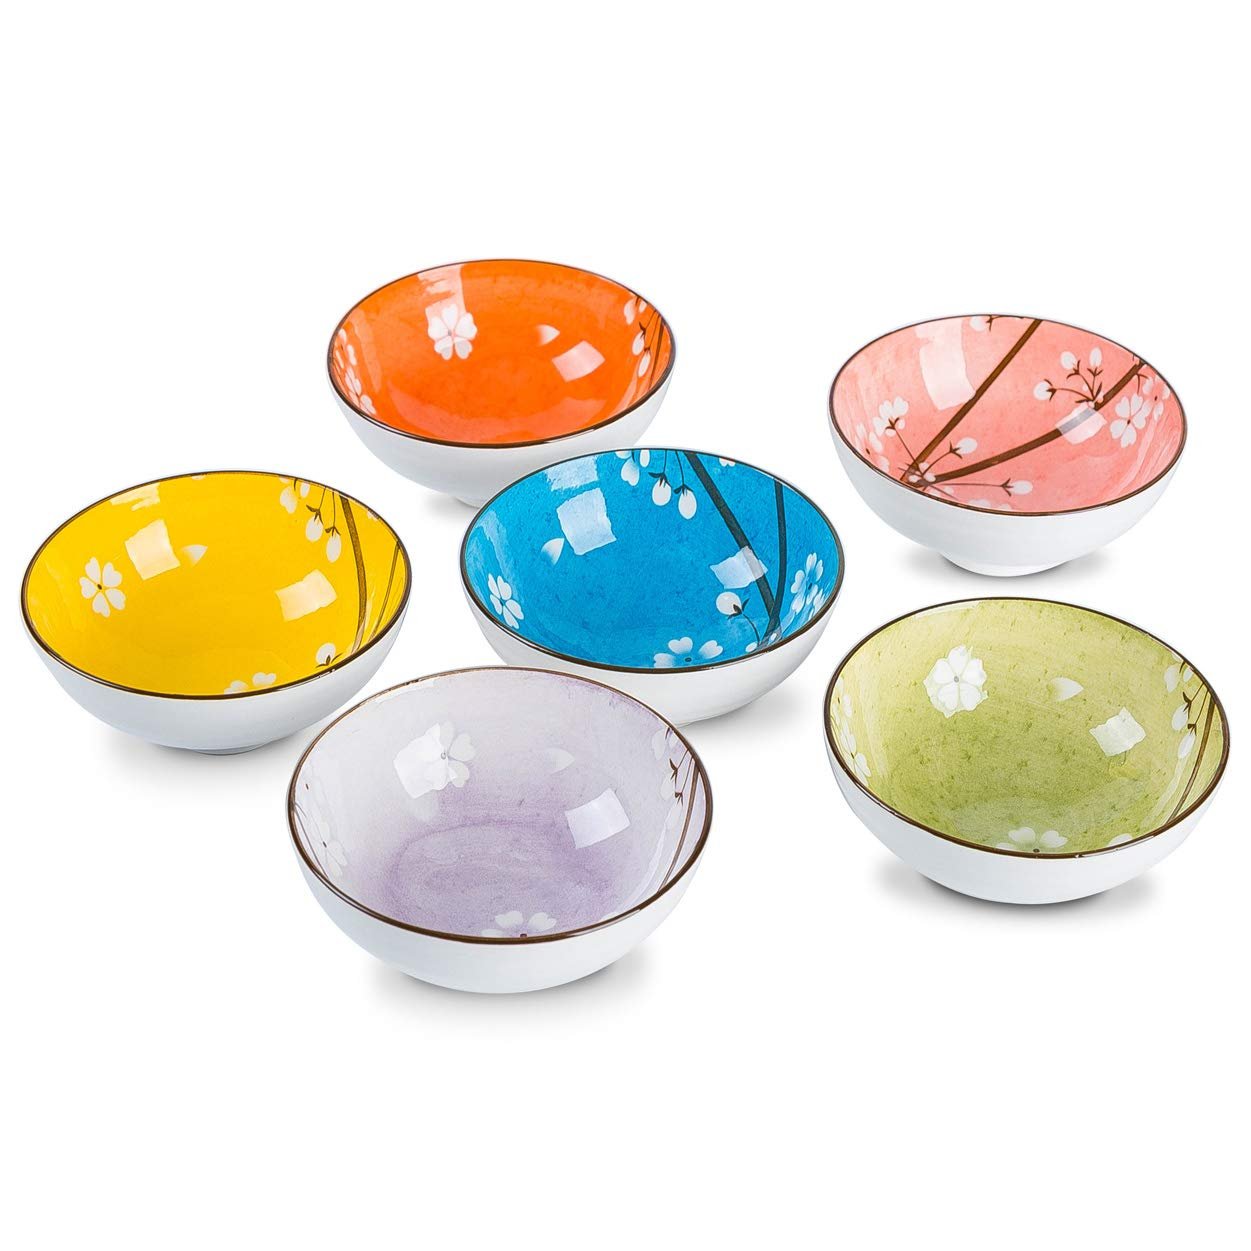 AnBnCn 6 Packs 10-Ounce Porcelain Small Bowl Set for Rice and Beans, Dessert, Small Side Dishes, Pudding, Sauce - Multi-Color-(Japanese Style-B)